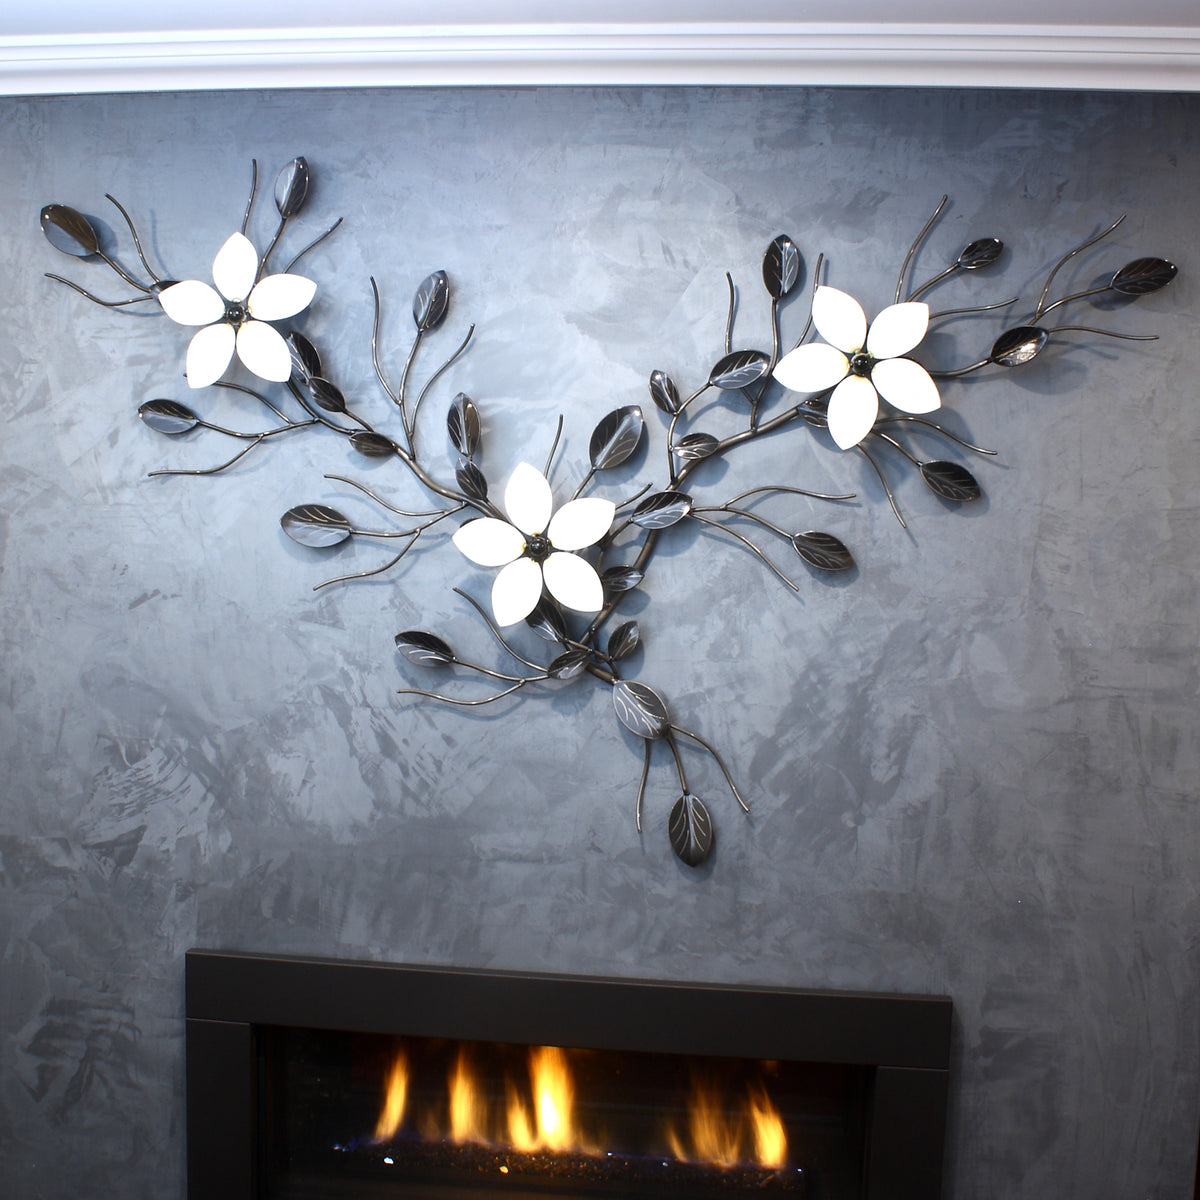 3 Flowers On A Vine: Wall-mounted Metal Art Flowers